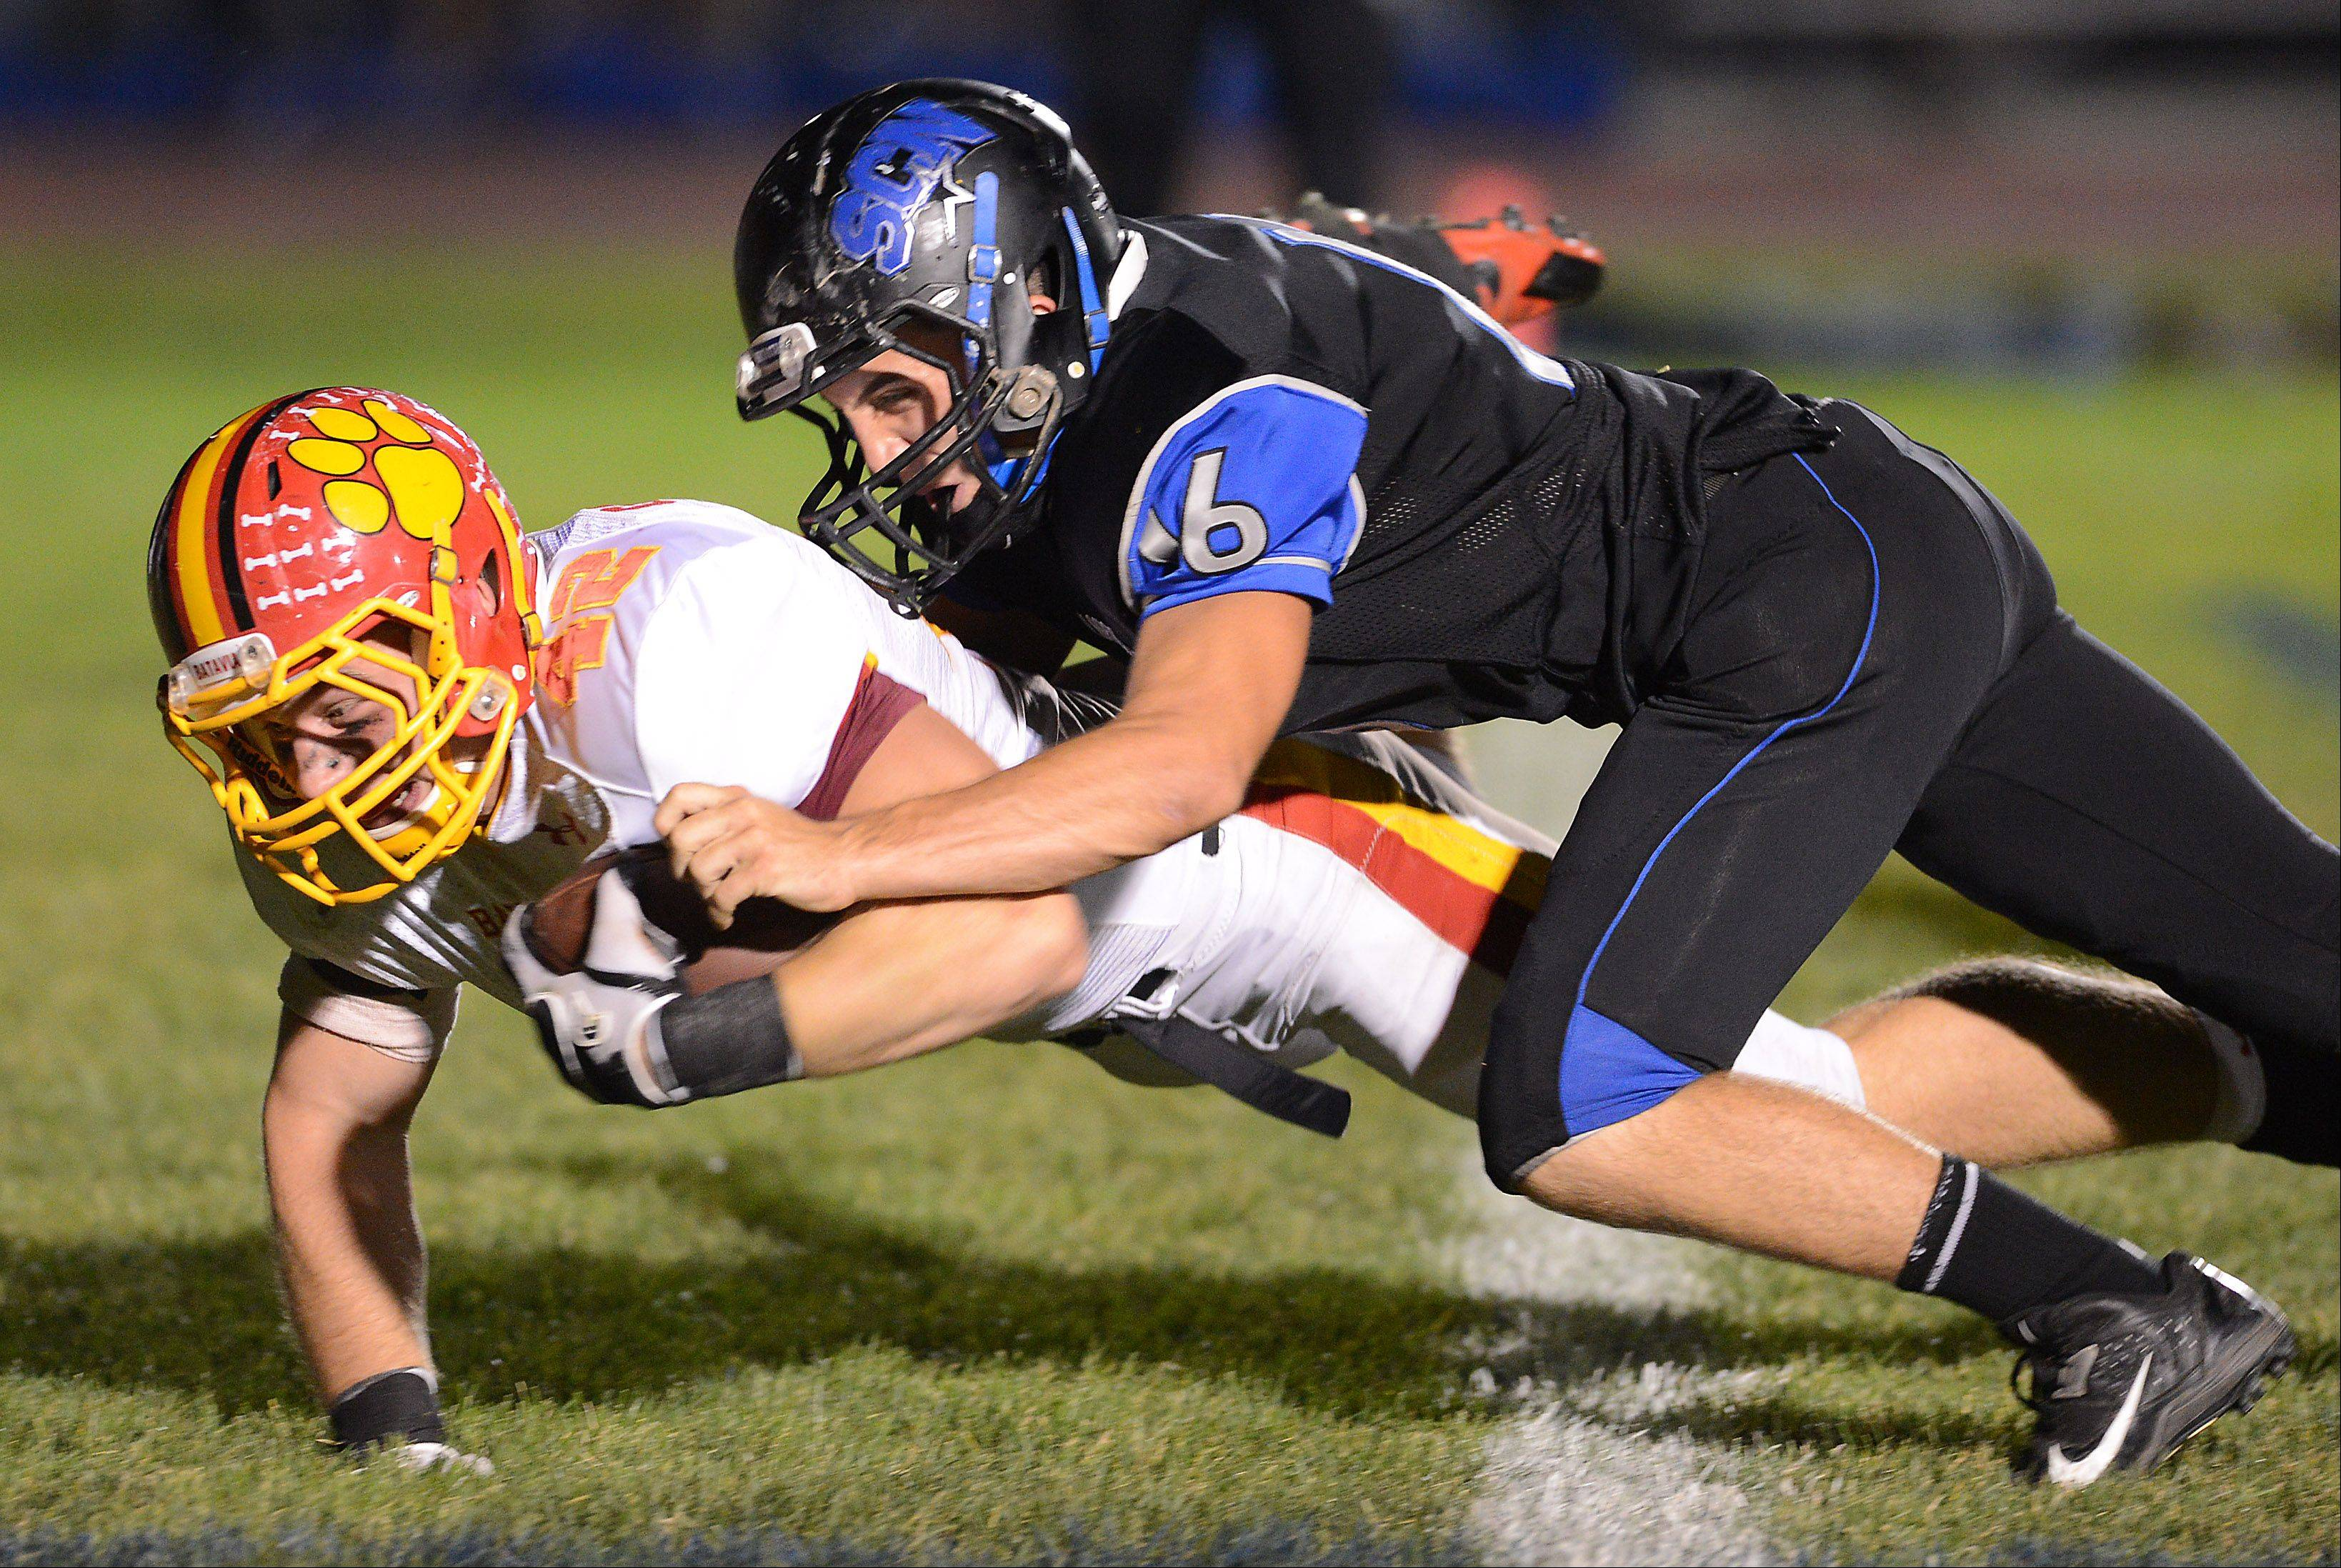 Batavia's Kevin Green (42) dives across the goalline under pressure from St Charles North's Tyler Bell for a touchdown to put the Bulldogs up 19-0 against St. Charles North Friday's game in St. Charles.